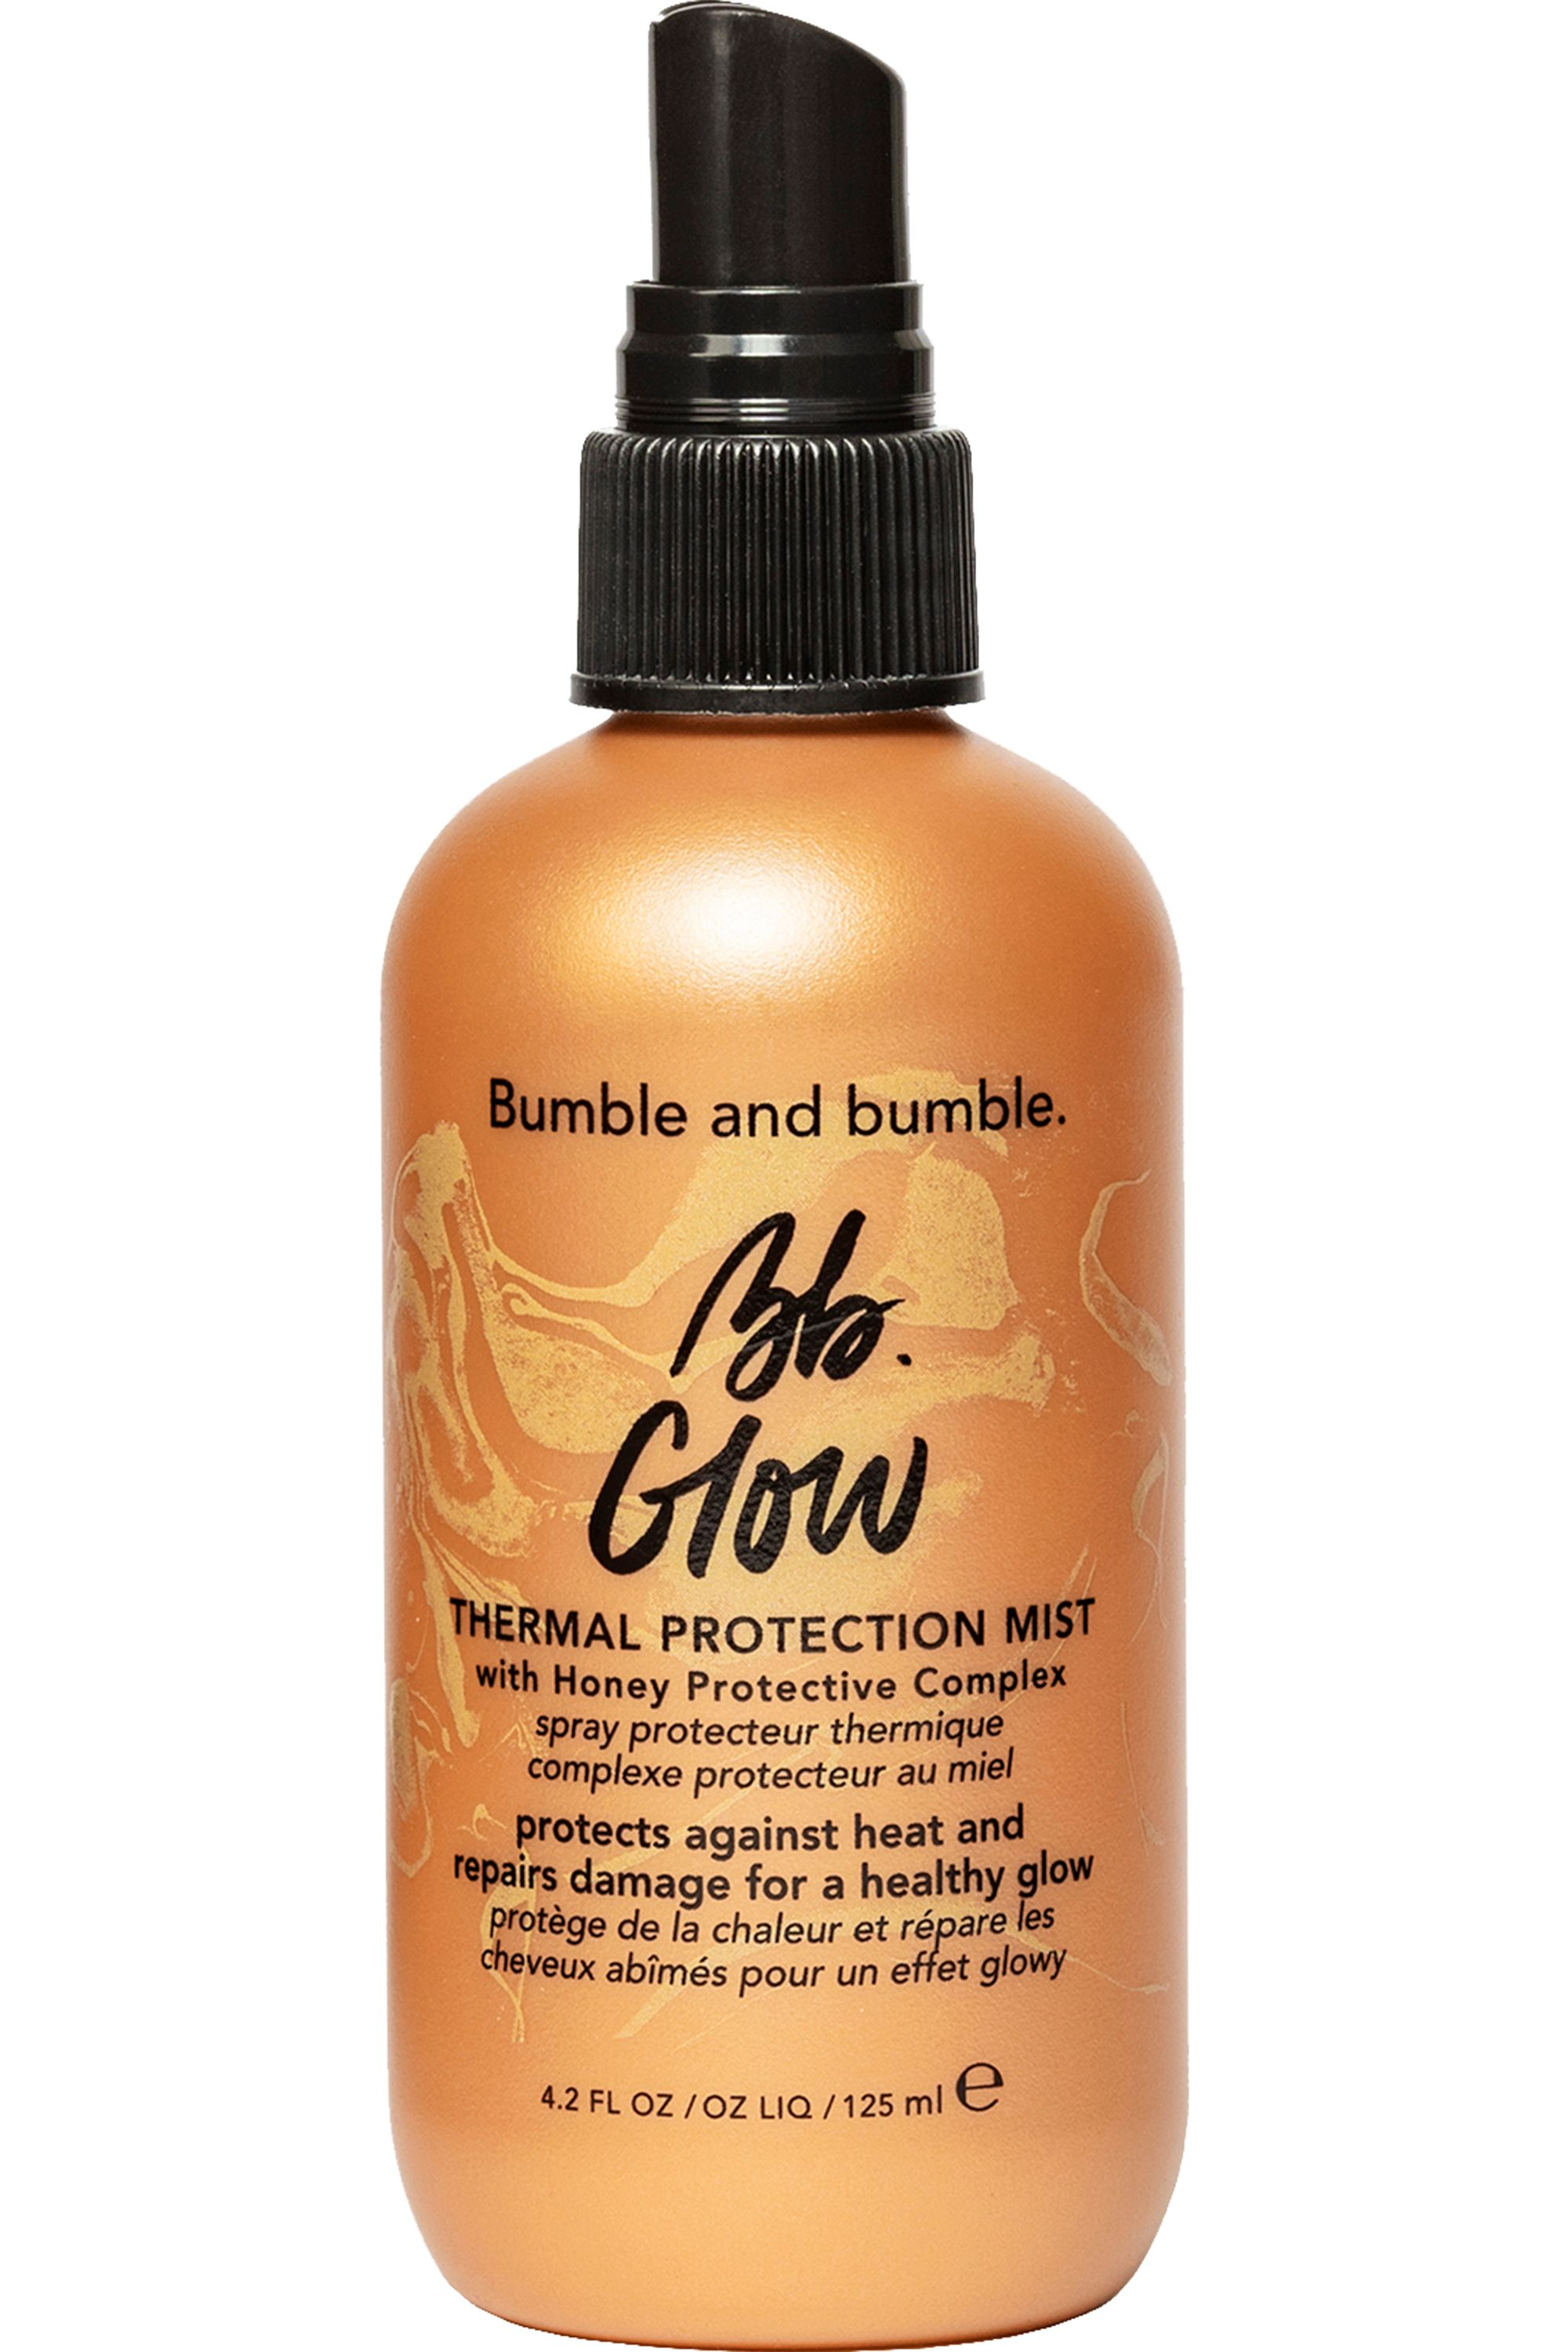 Blissim : Bumble and bumble. - Brume thermo-protectrice Bb.Glow - Brume thermo-protectrice Bb.Glow